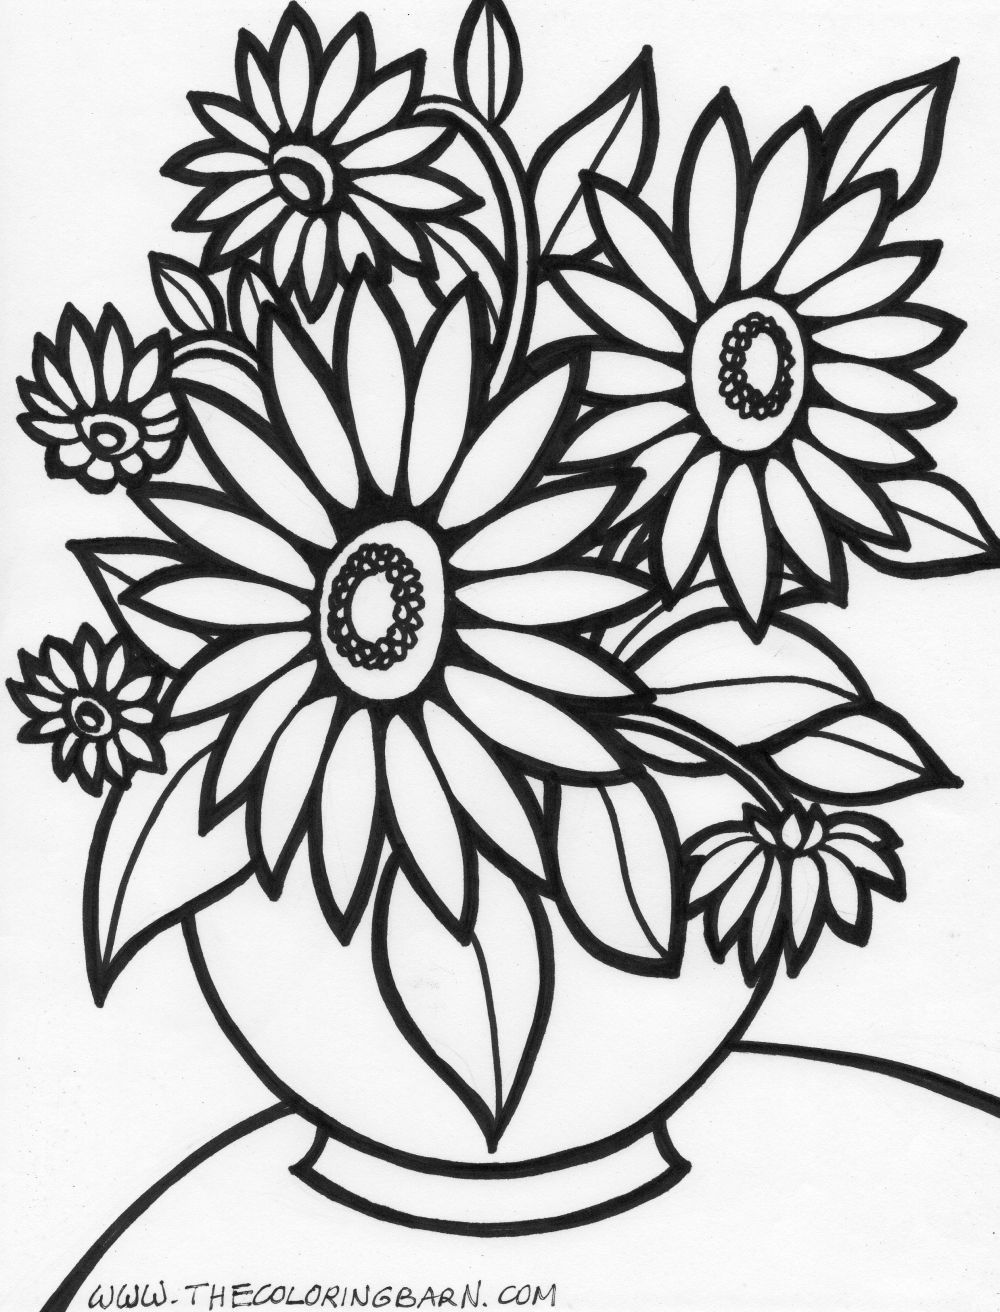 flower coloring pages for teens | Flower Coloring Pages For Teens - Coloring Home